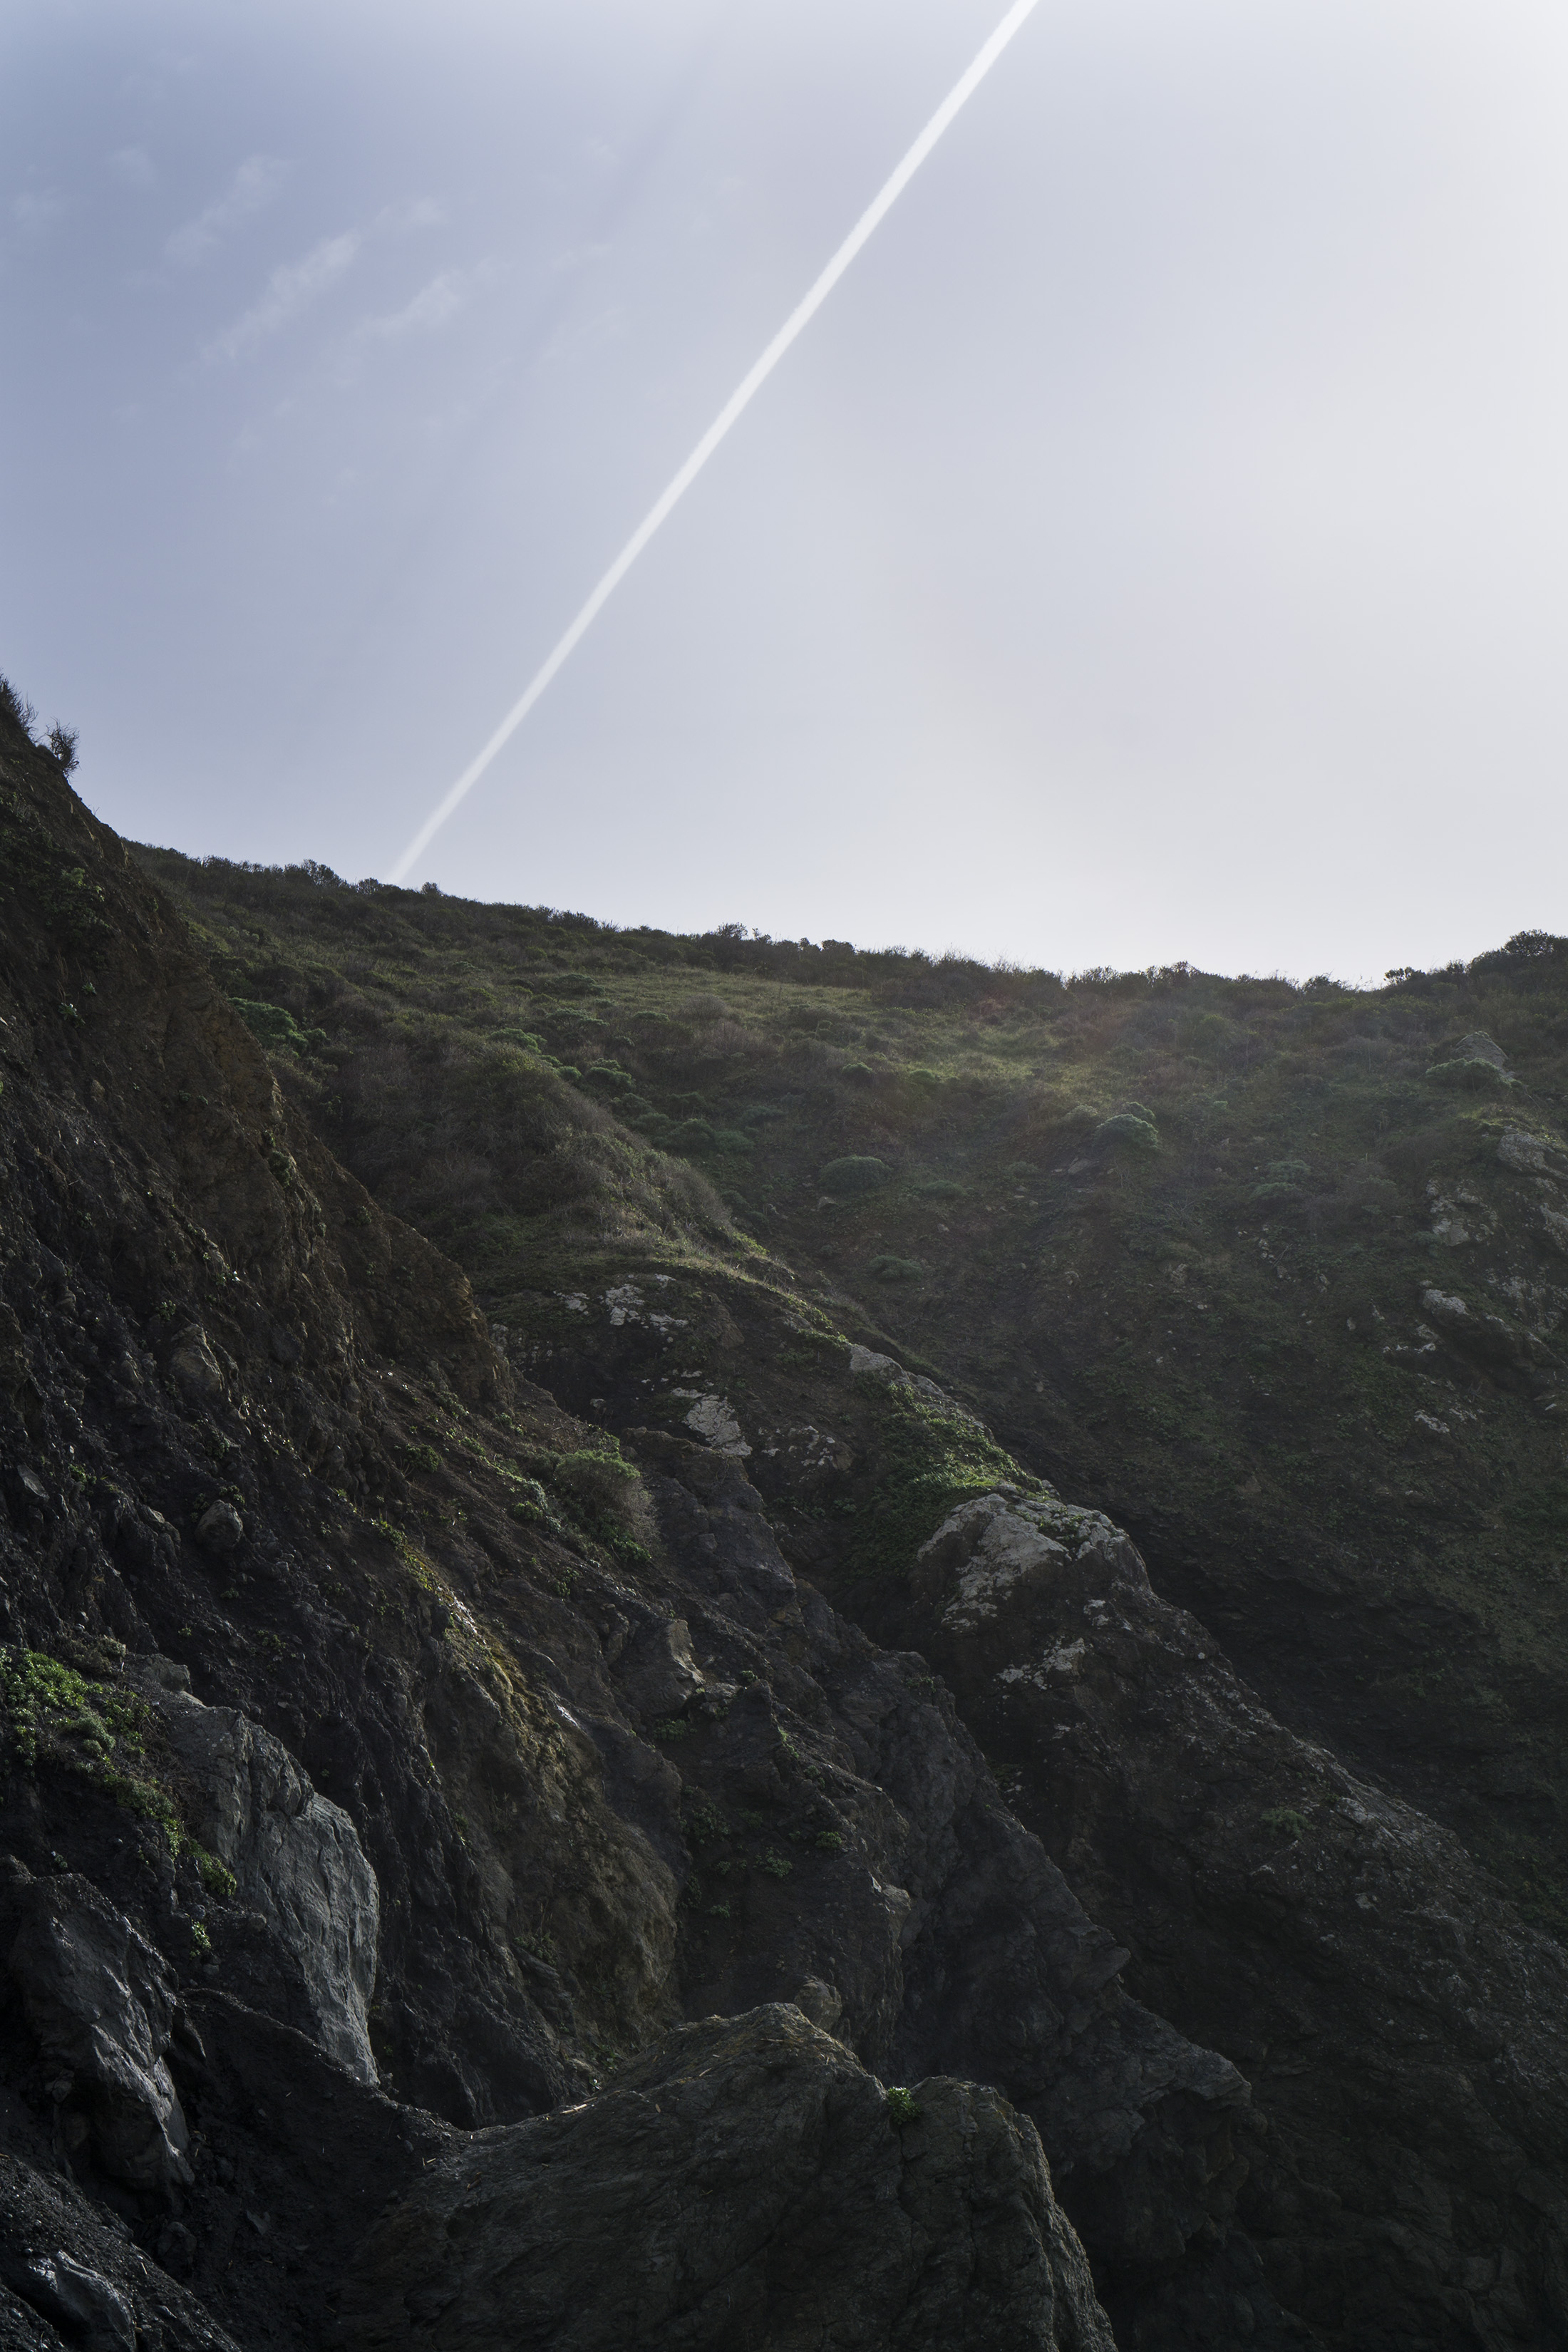 Contrail in the sky behind the cliff at Pirates Cove, Marin Headlands, Golden Gate National Recreation Area / Darker than Green